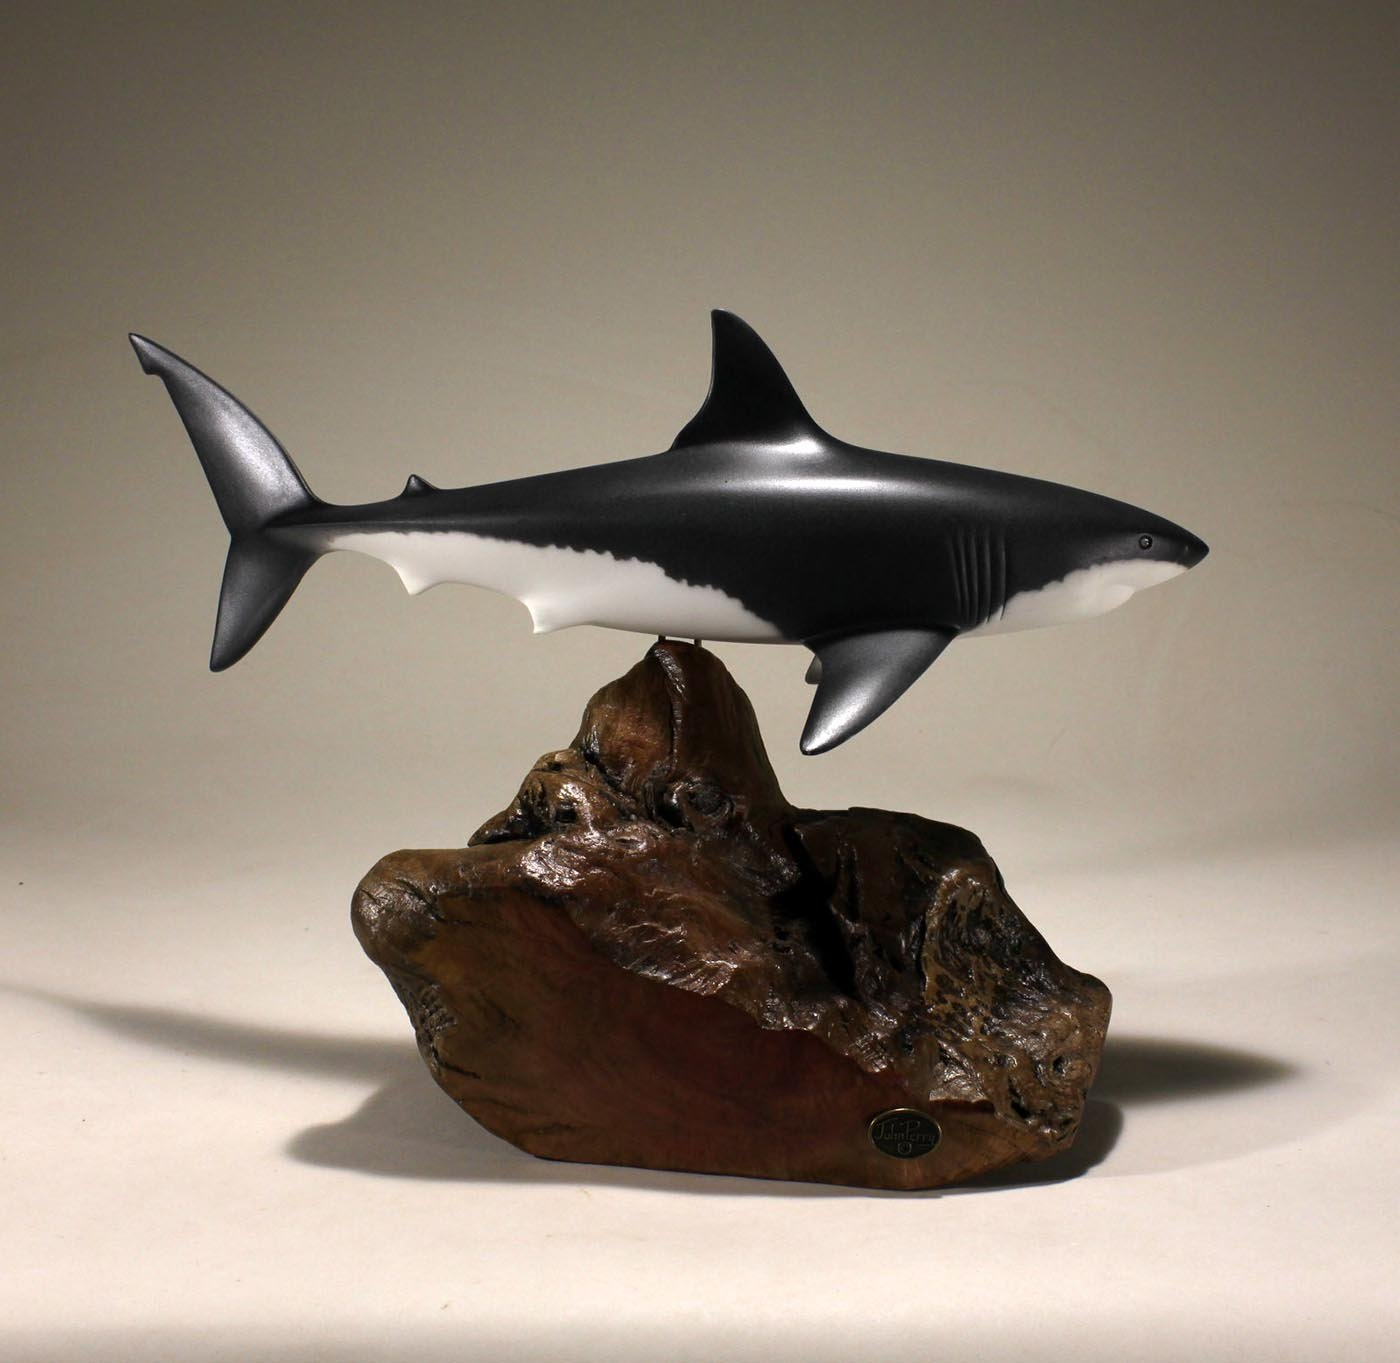 Great White Shark Sculpture by John Perry 15in Long Airbrushed on Burl Wood Decor